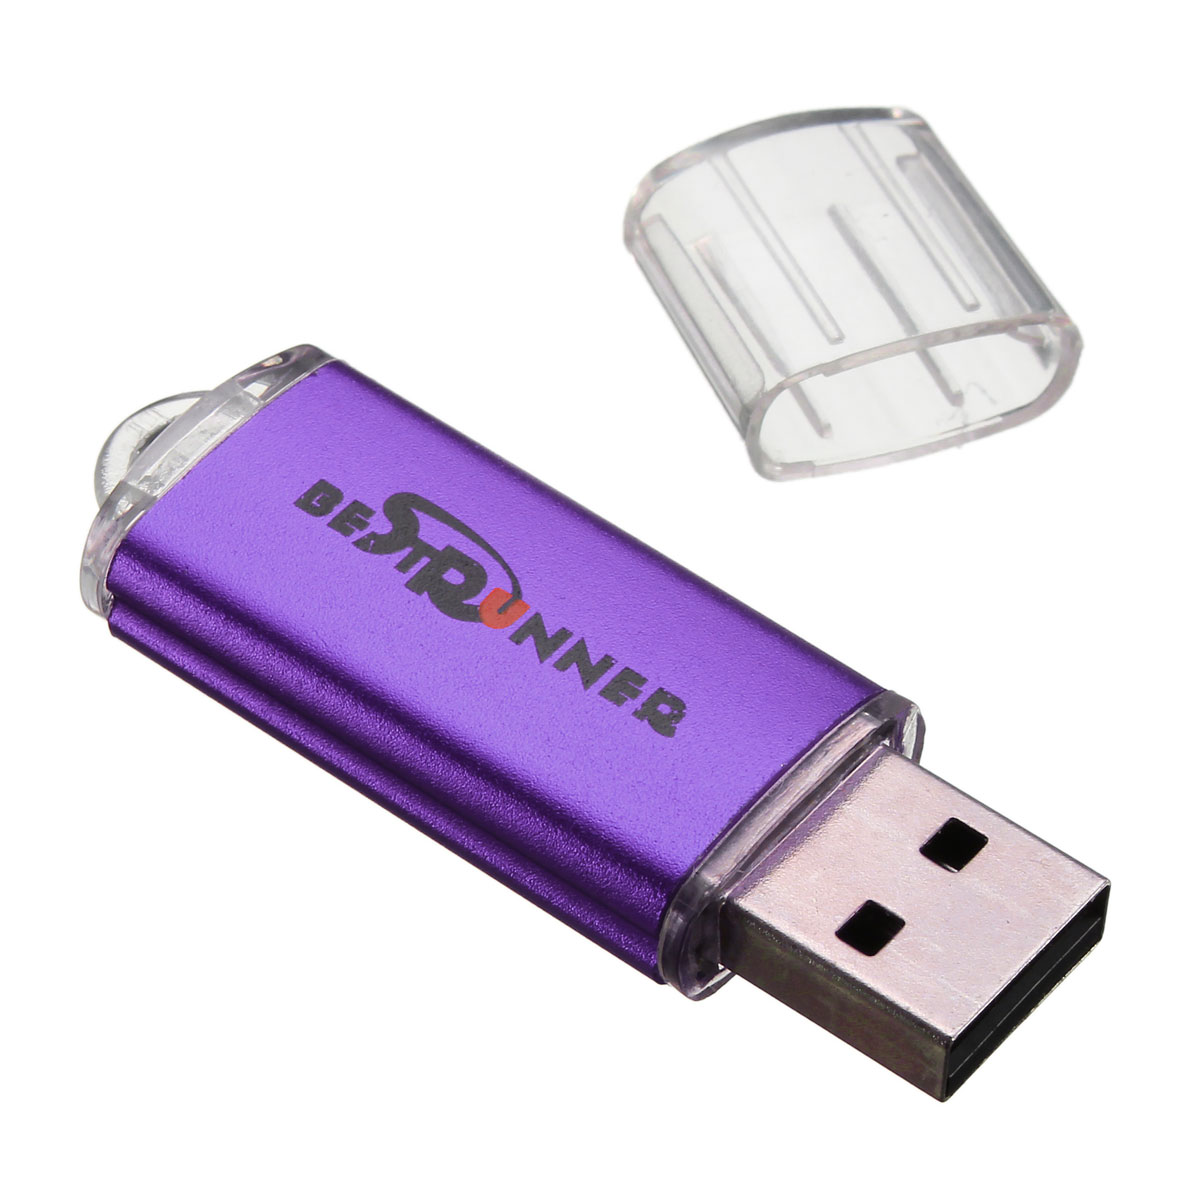 BESTRUNNER 256MB USB 2.0 Flash Memory Stick Pen Drive Storage Thumb Candy Color